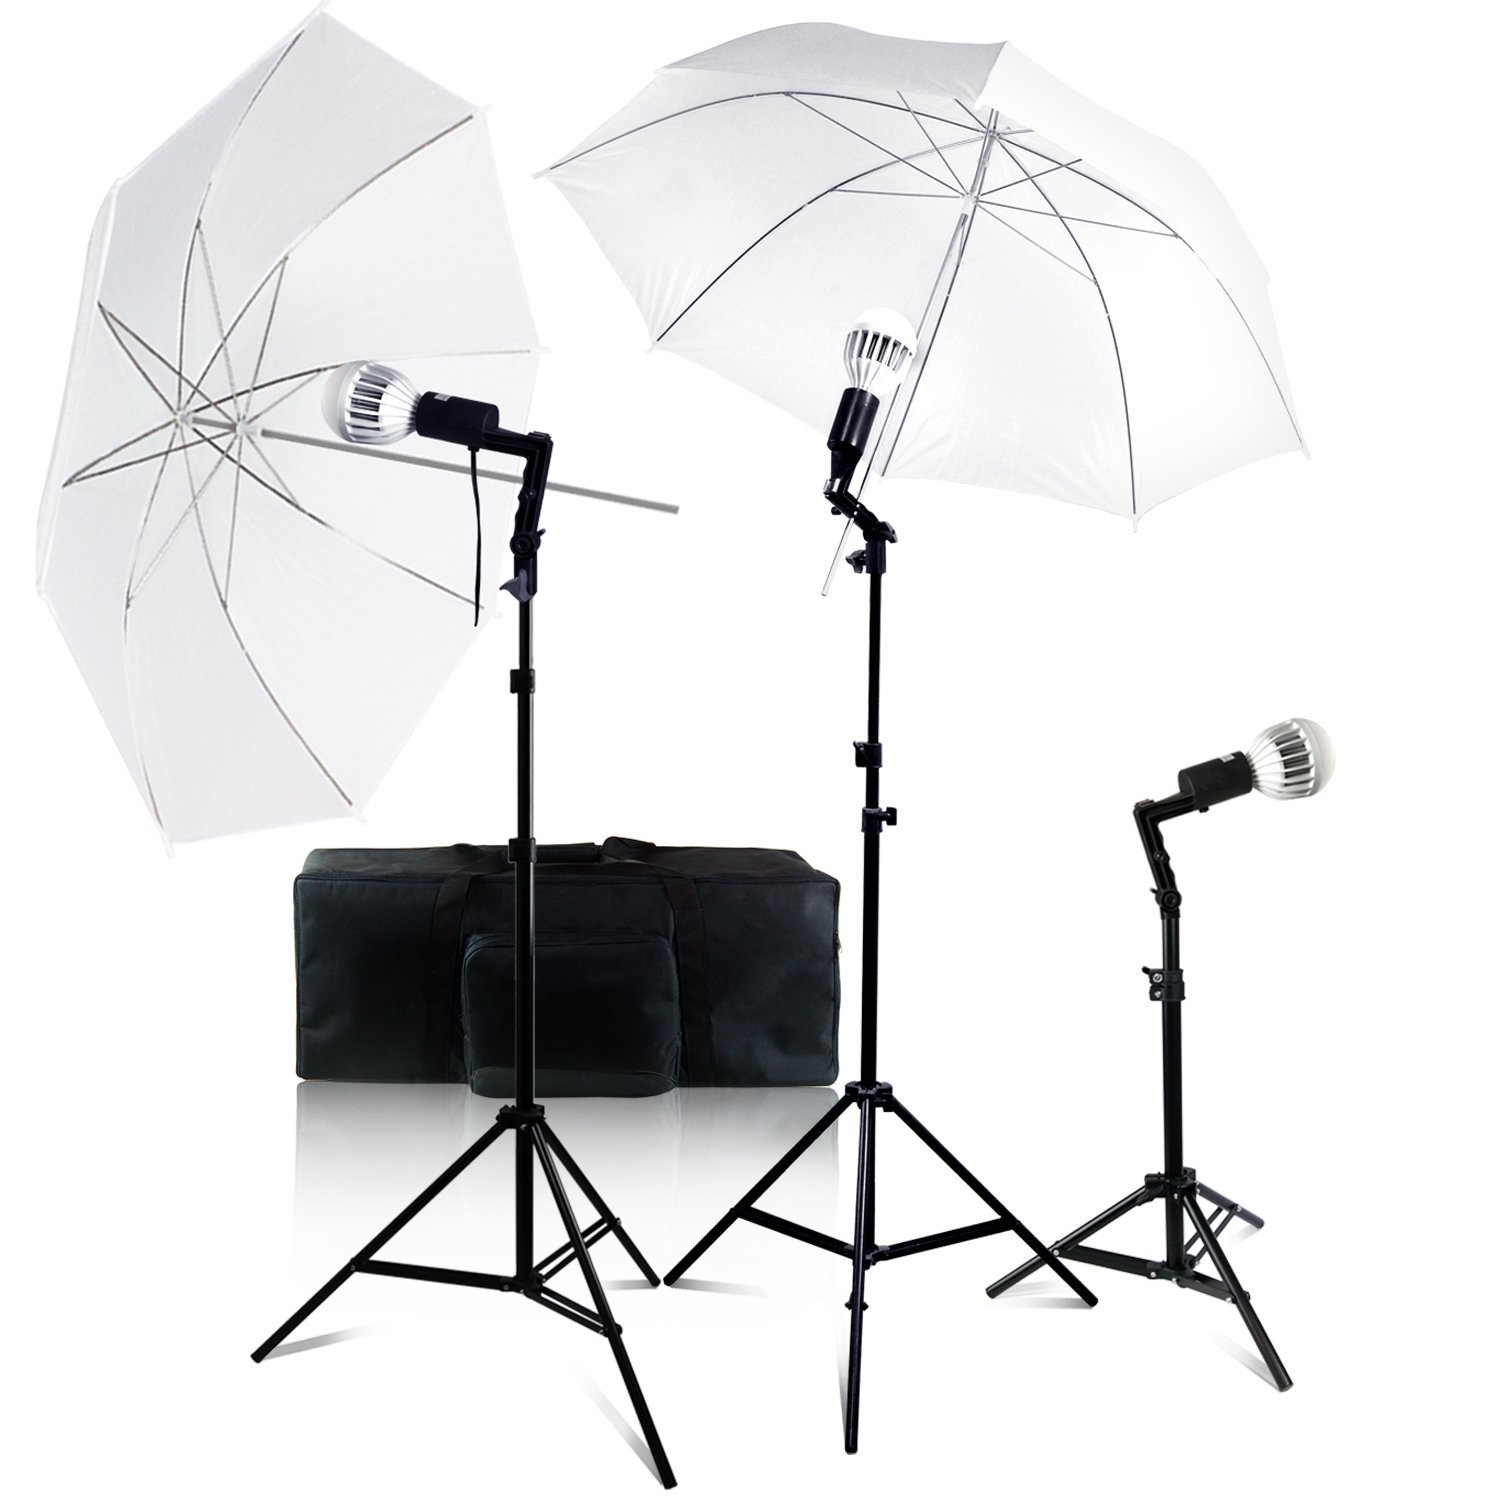 65d48031a755 Cheap Photo Light Room, find Photo Light Room deals on line at ...